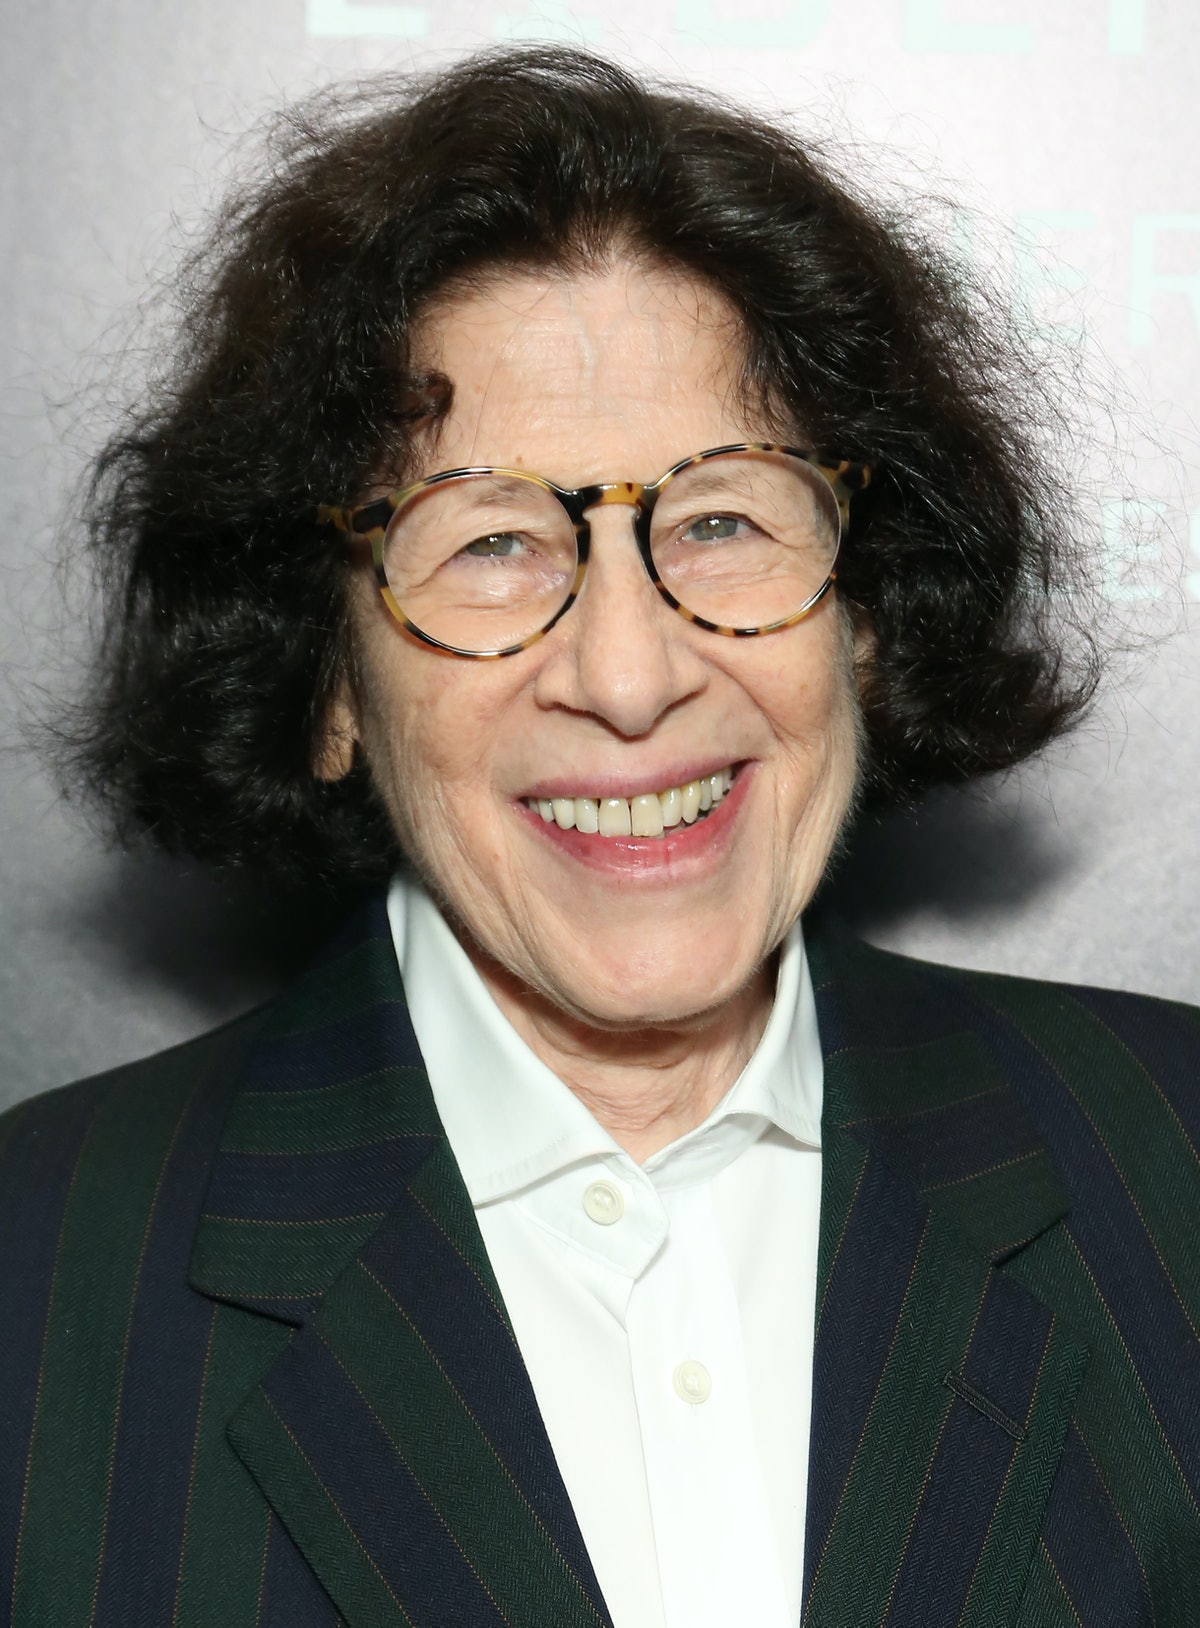 Fran Lebowitz Quotes from 'Pretend It's a City'